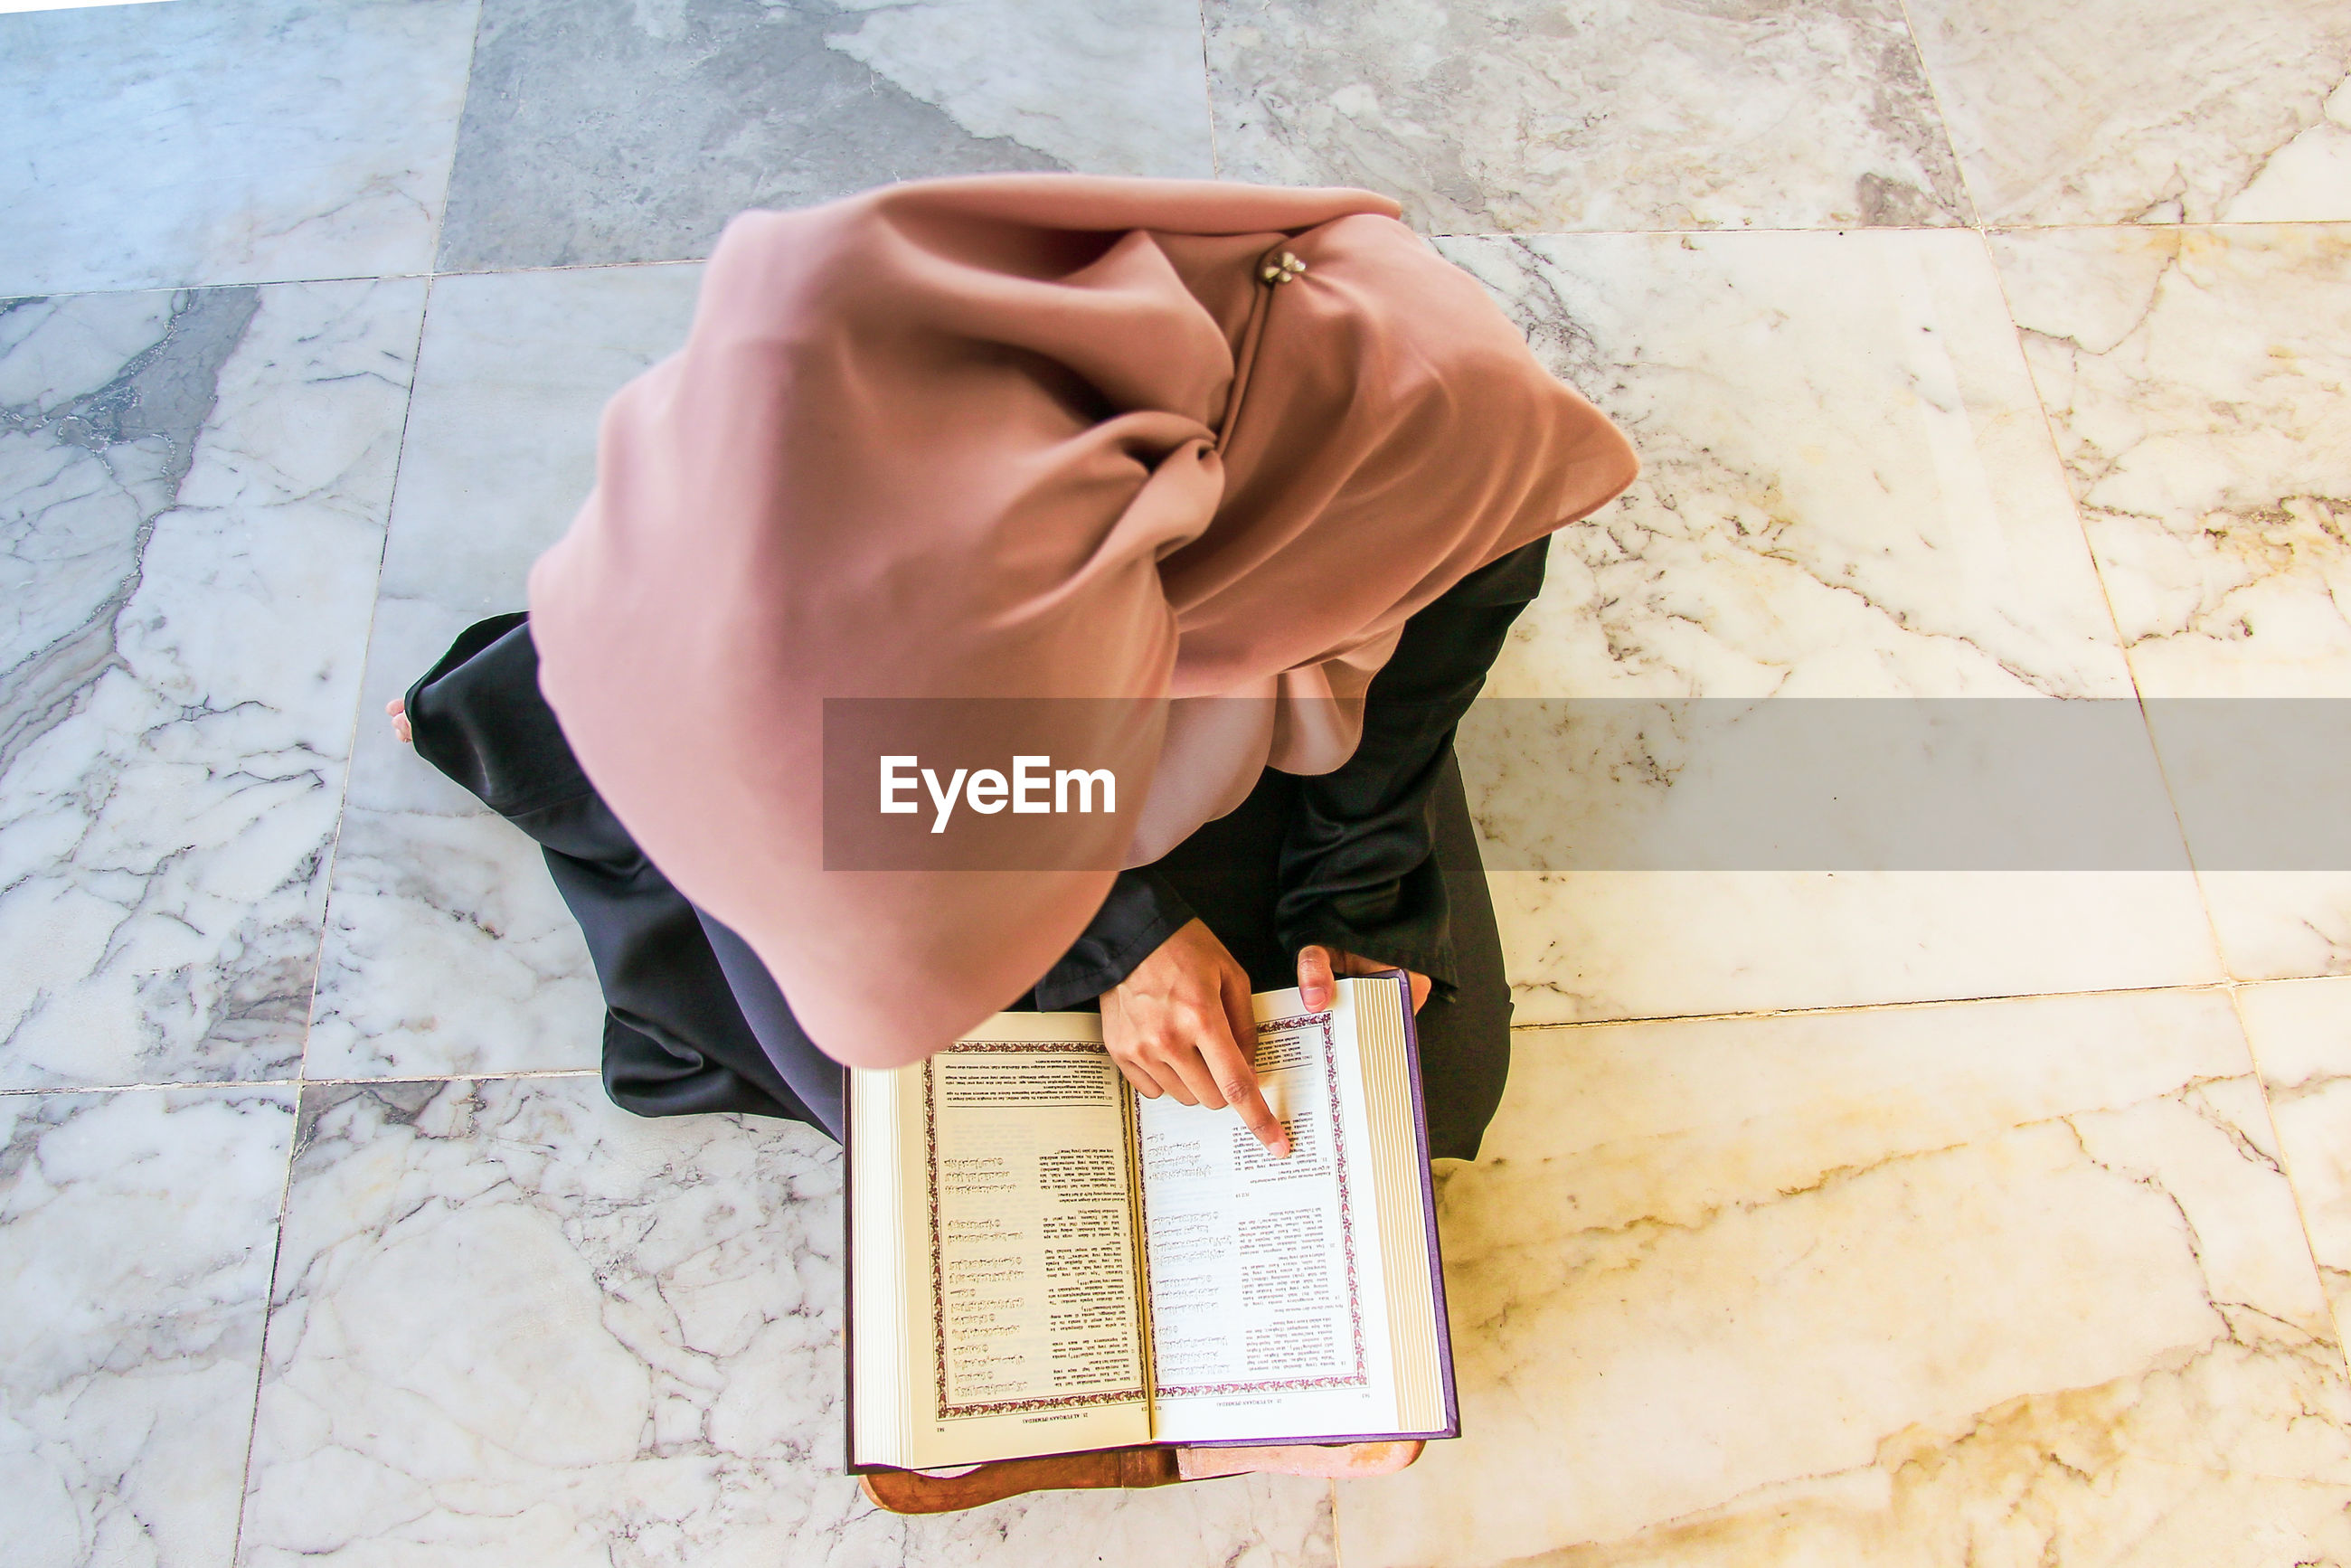 High angle view of young woman reading holy book while sitting at mosque